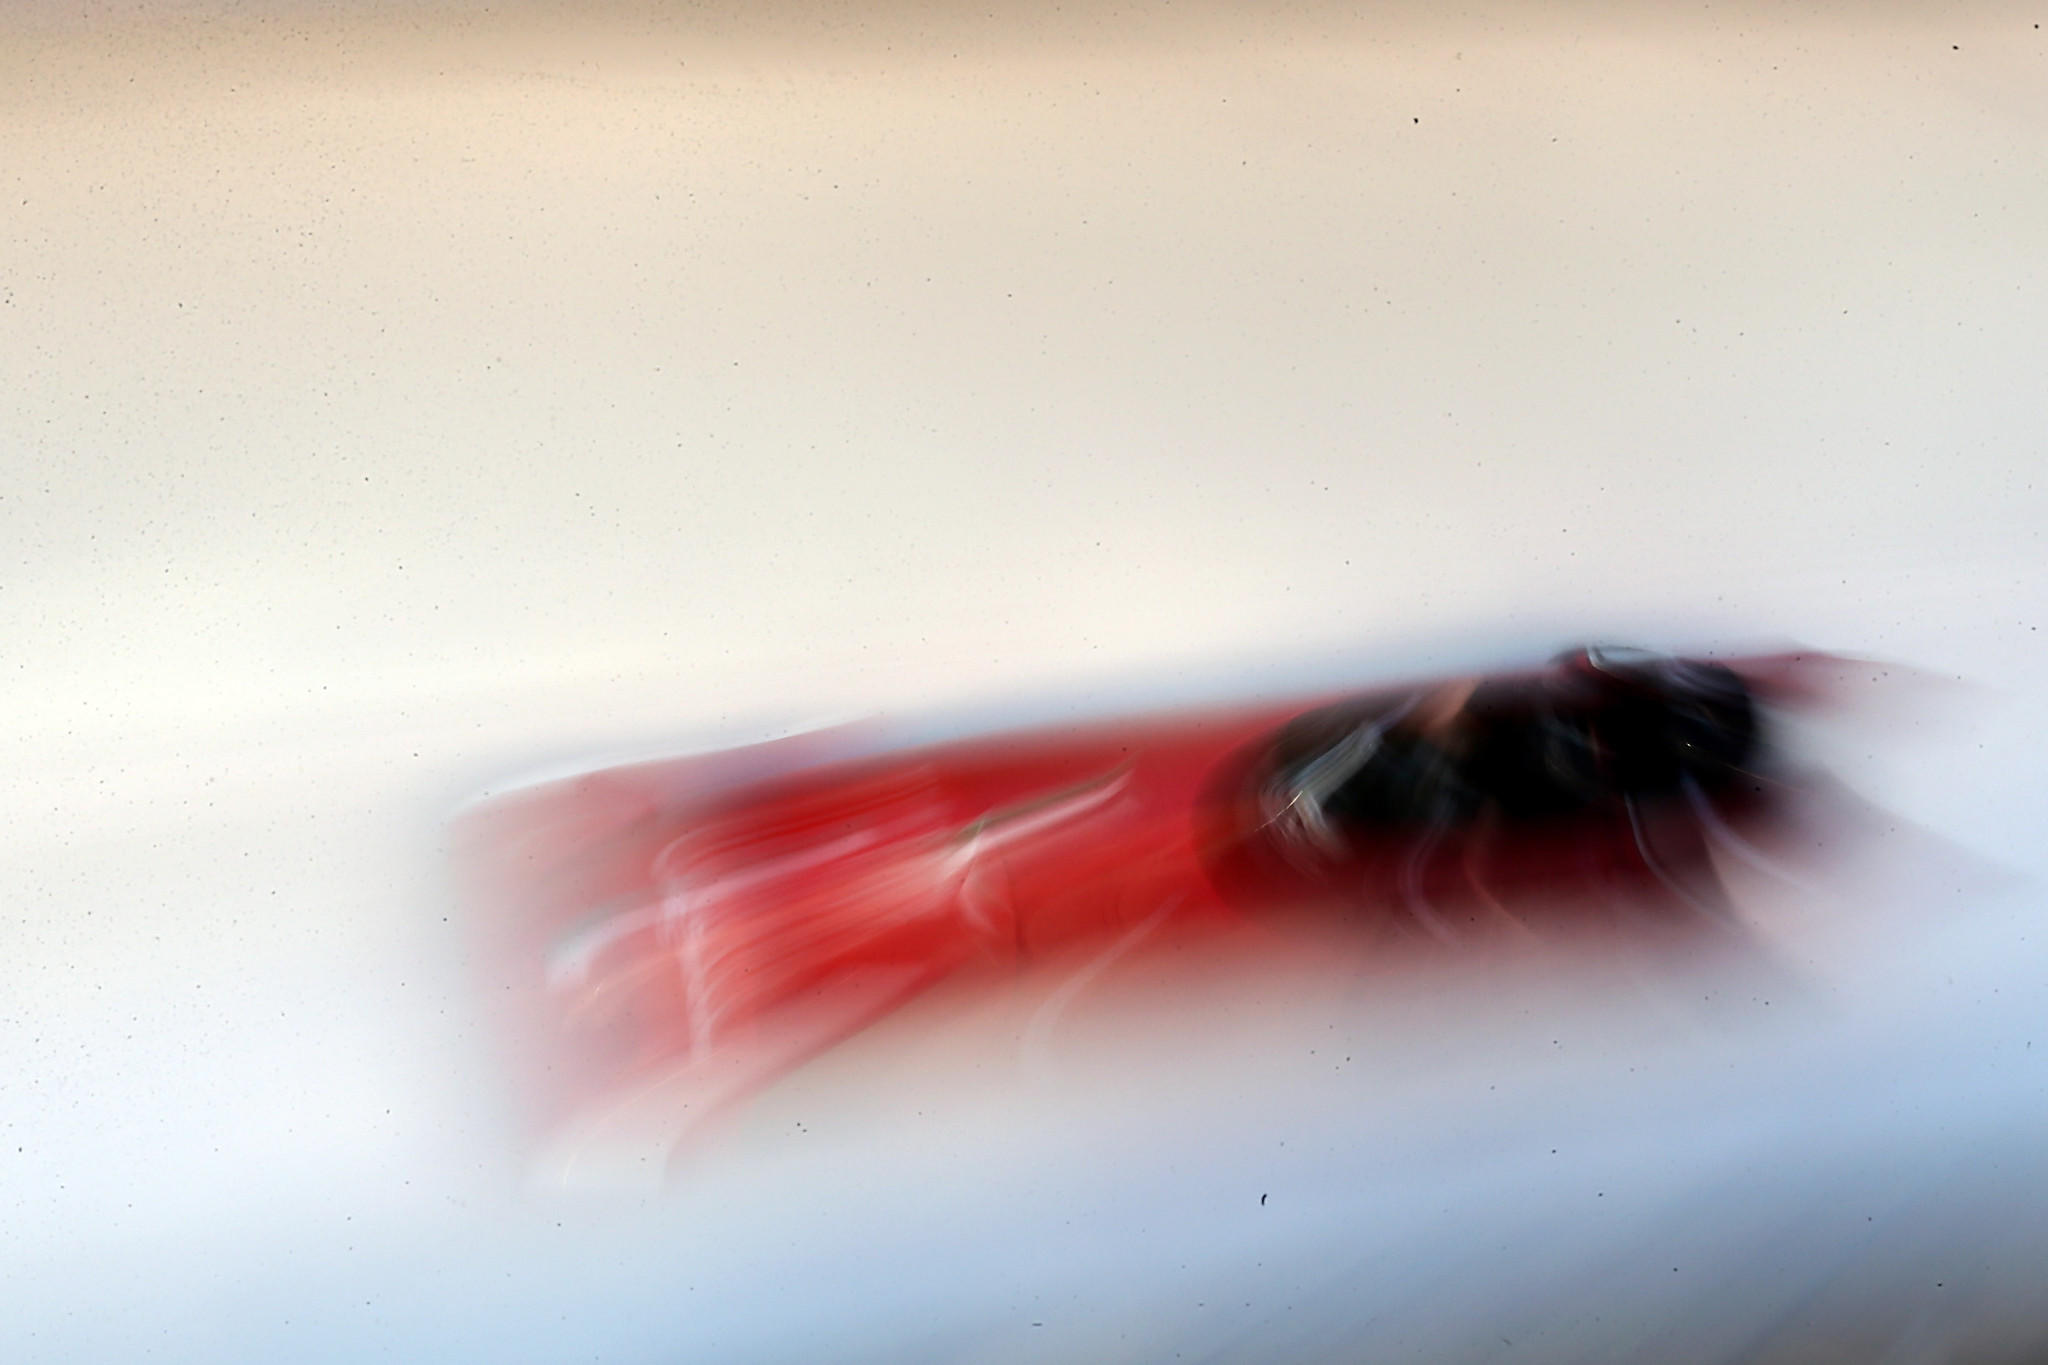 A bobsled team, including William Frullani of Italy, whiz by during competition in Germany ahead of the Olympics.